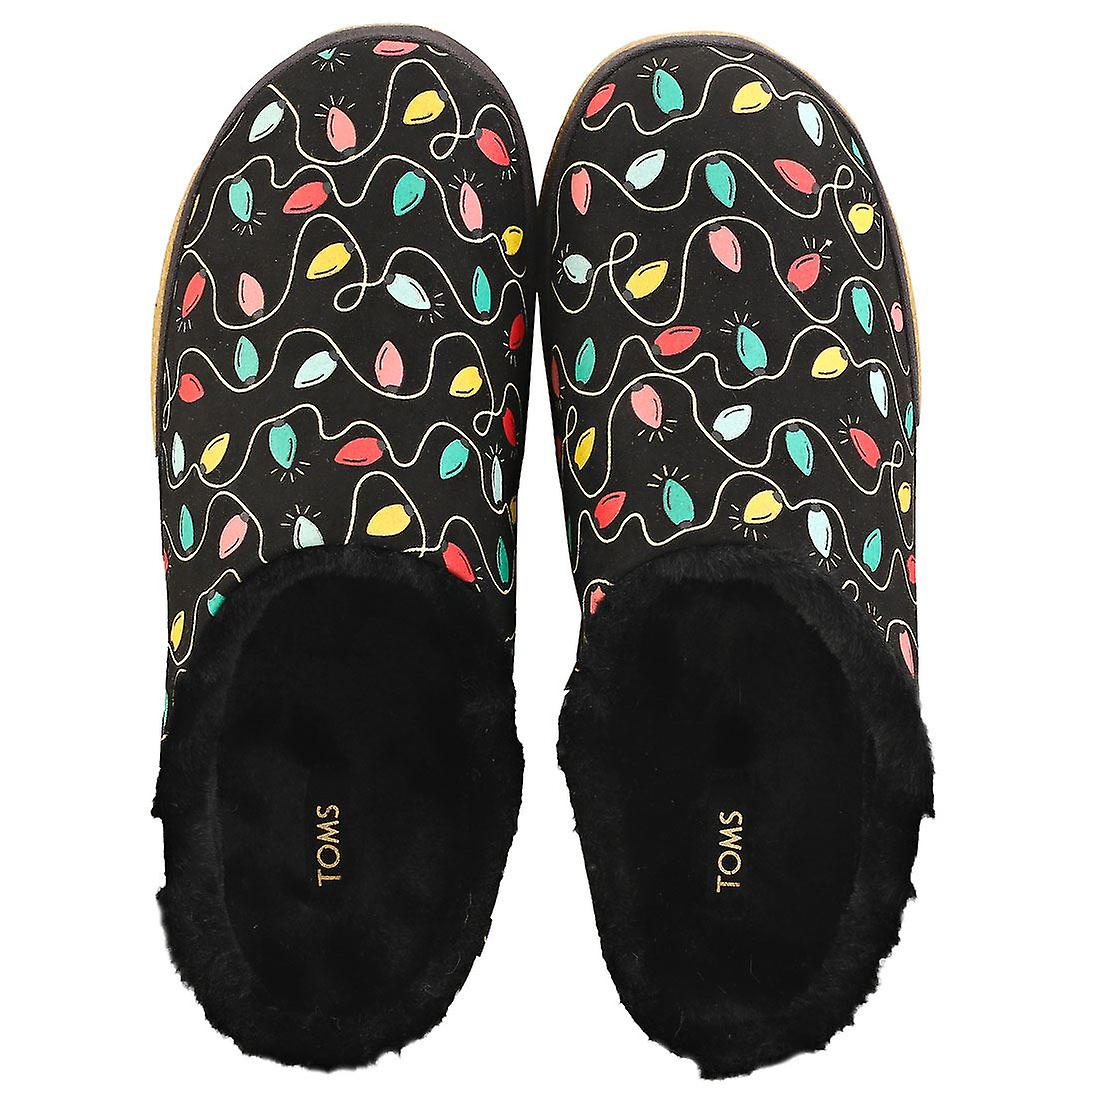 Toms Ivy Holiday Lights Womens Slip On Shoes in Black Multicolour